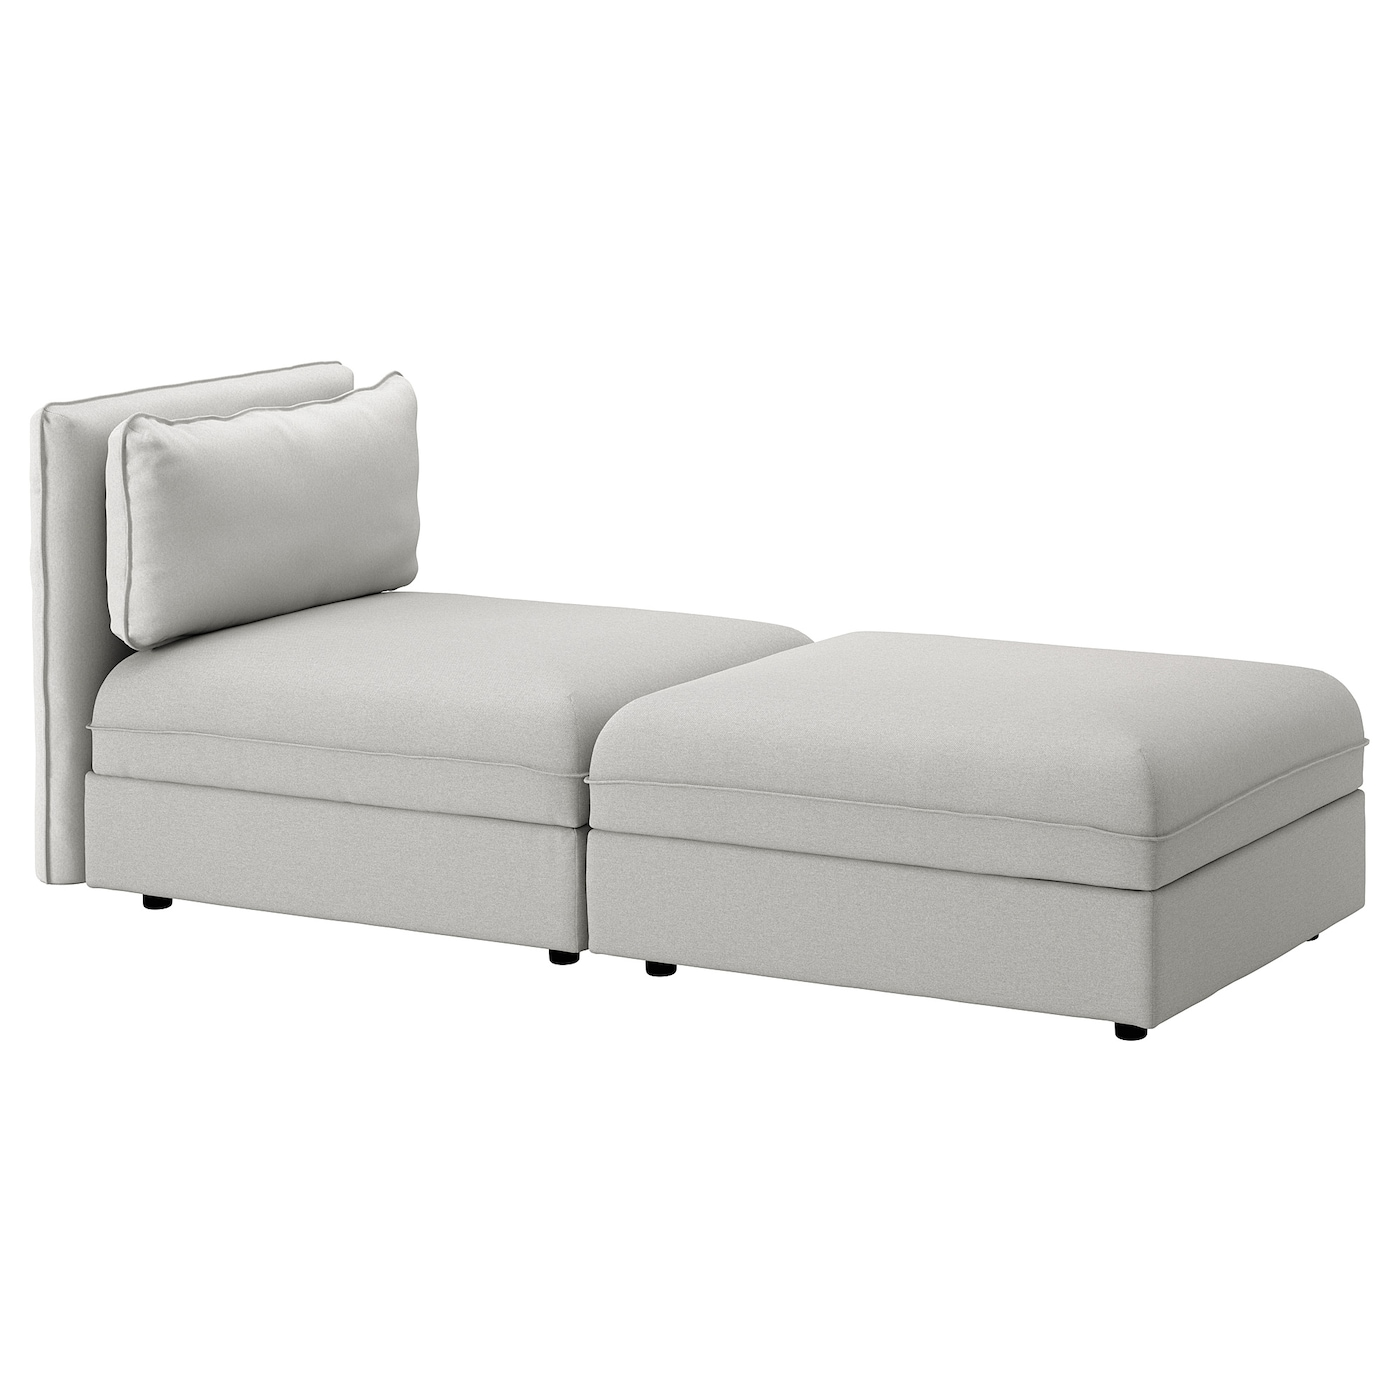 Ikea 2 Seat Sofa Solsta Sleeper Sofa Ikea Thesofa